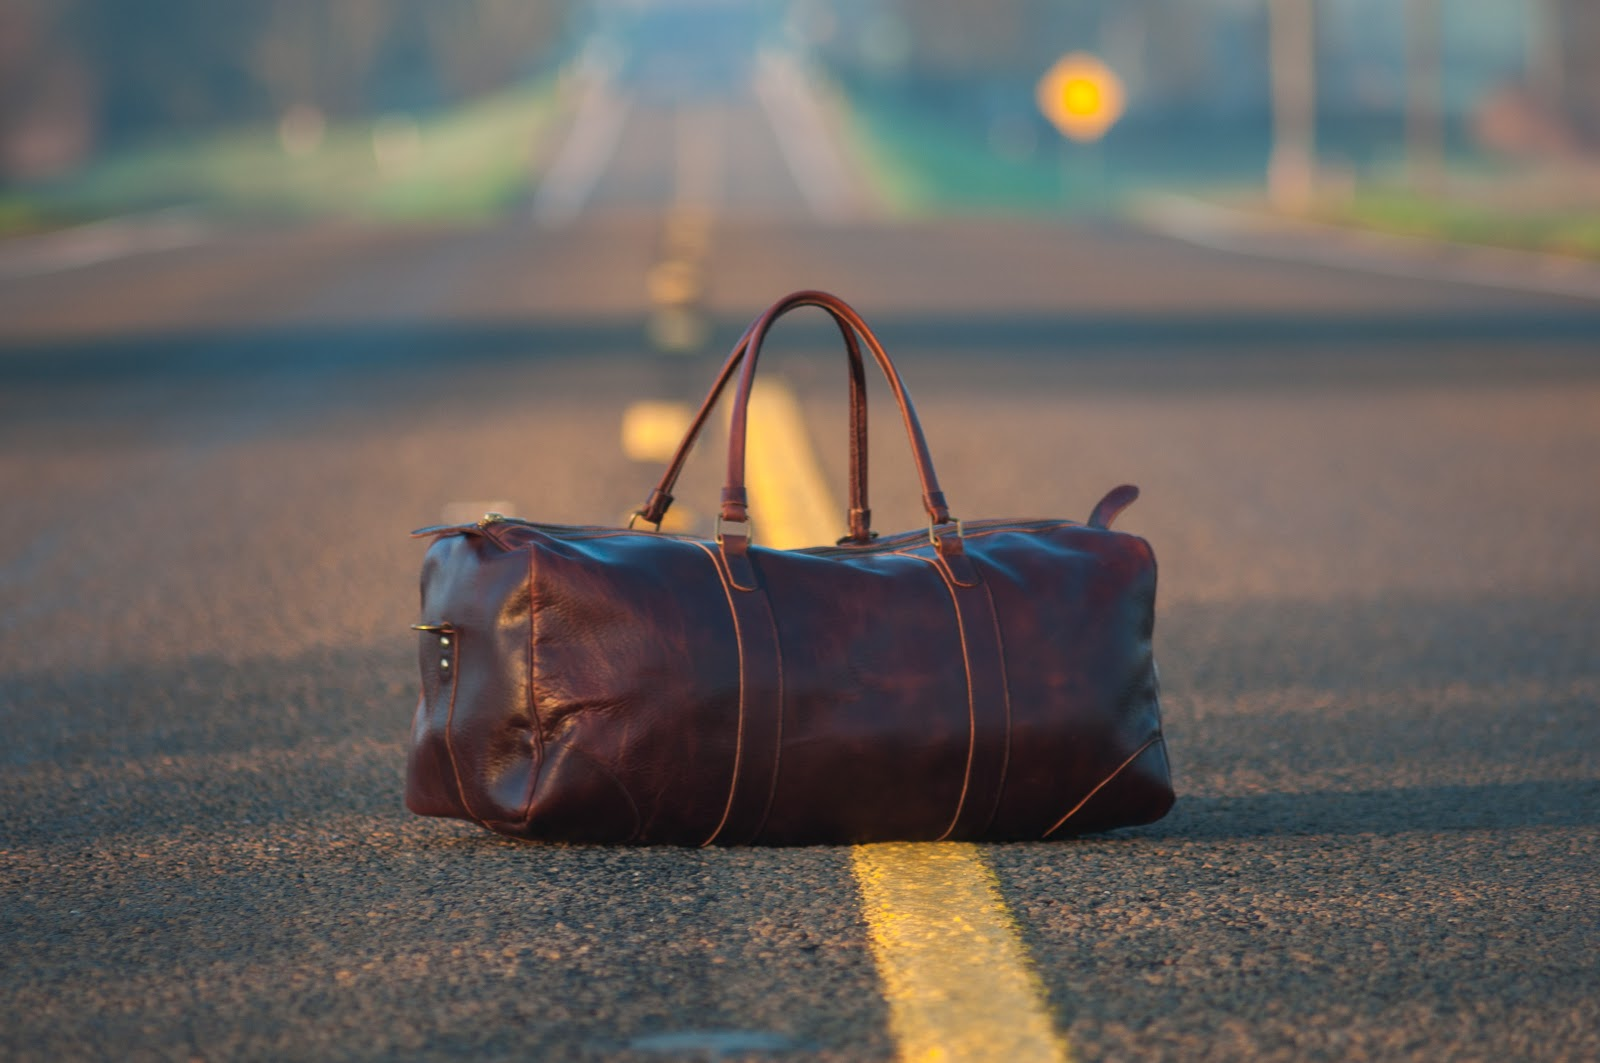 suitcase in the middle of the road